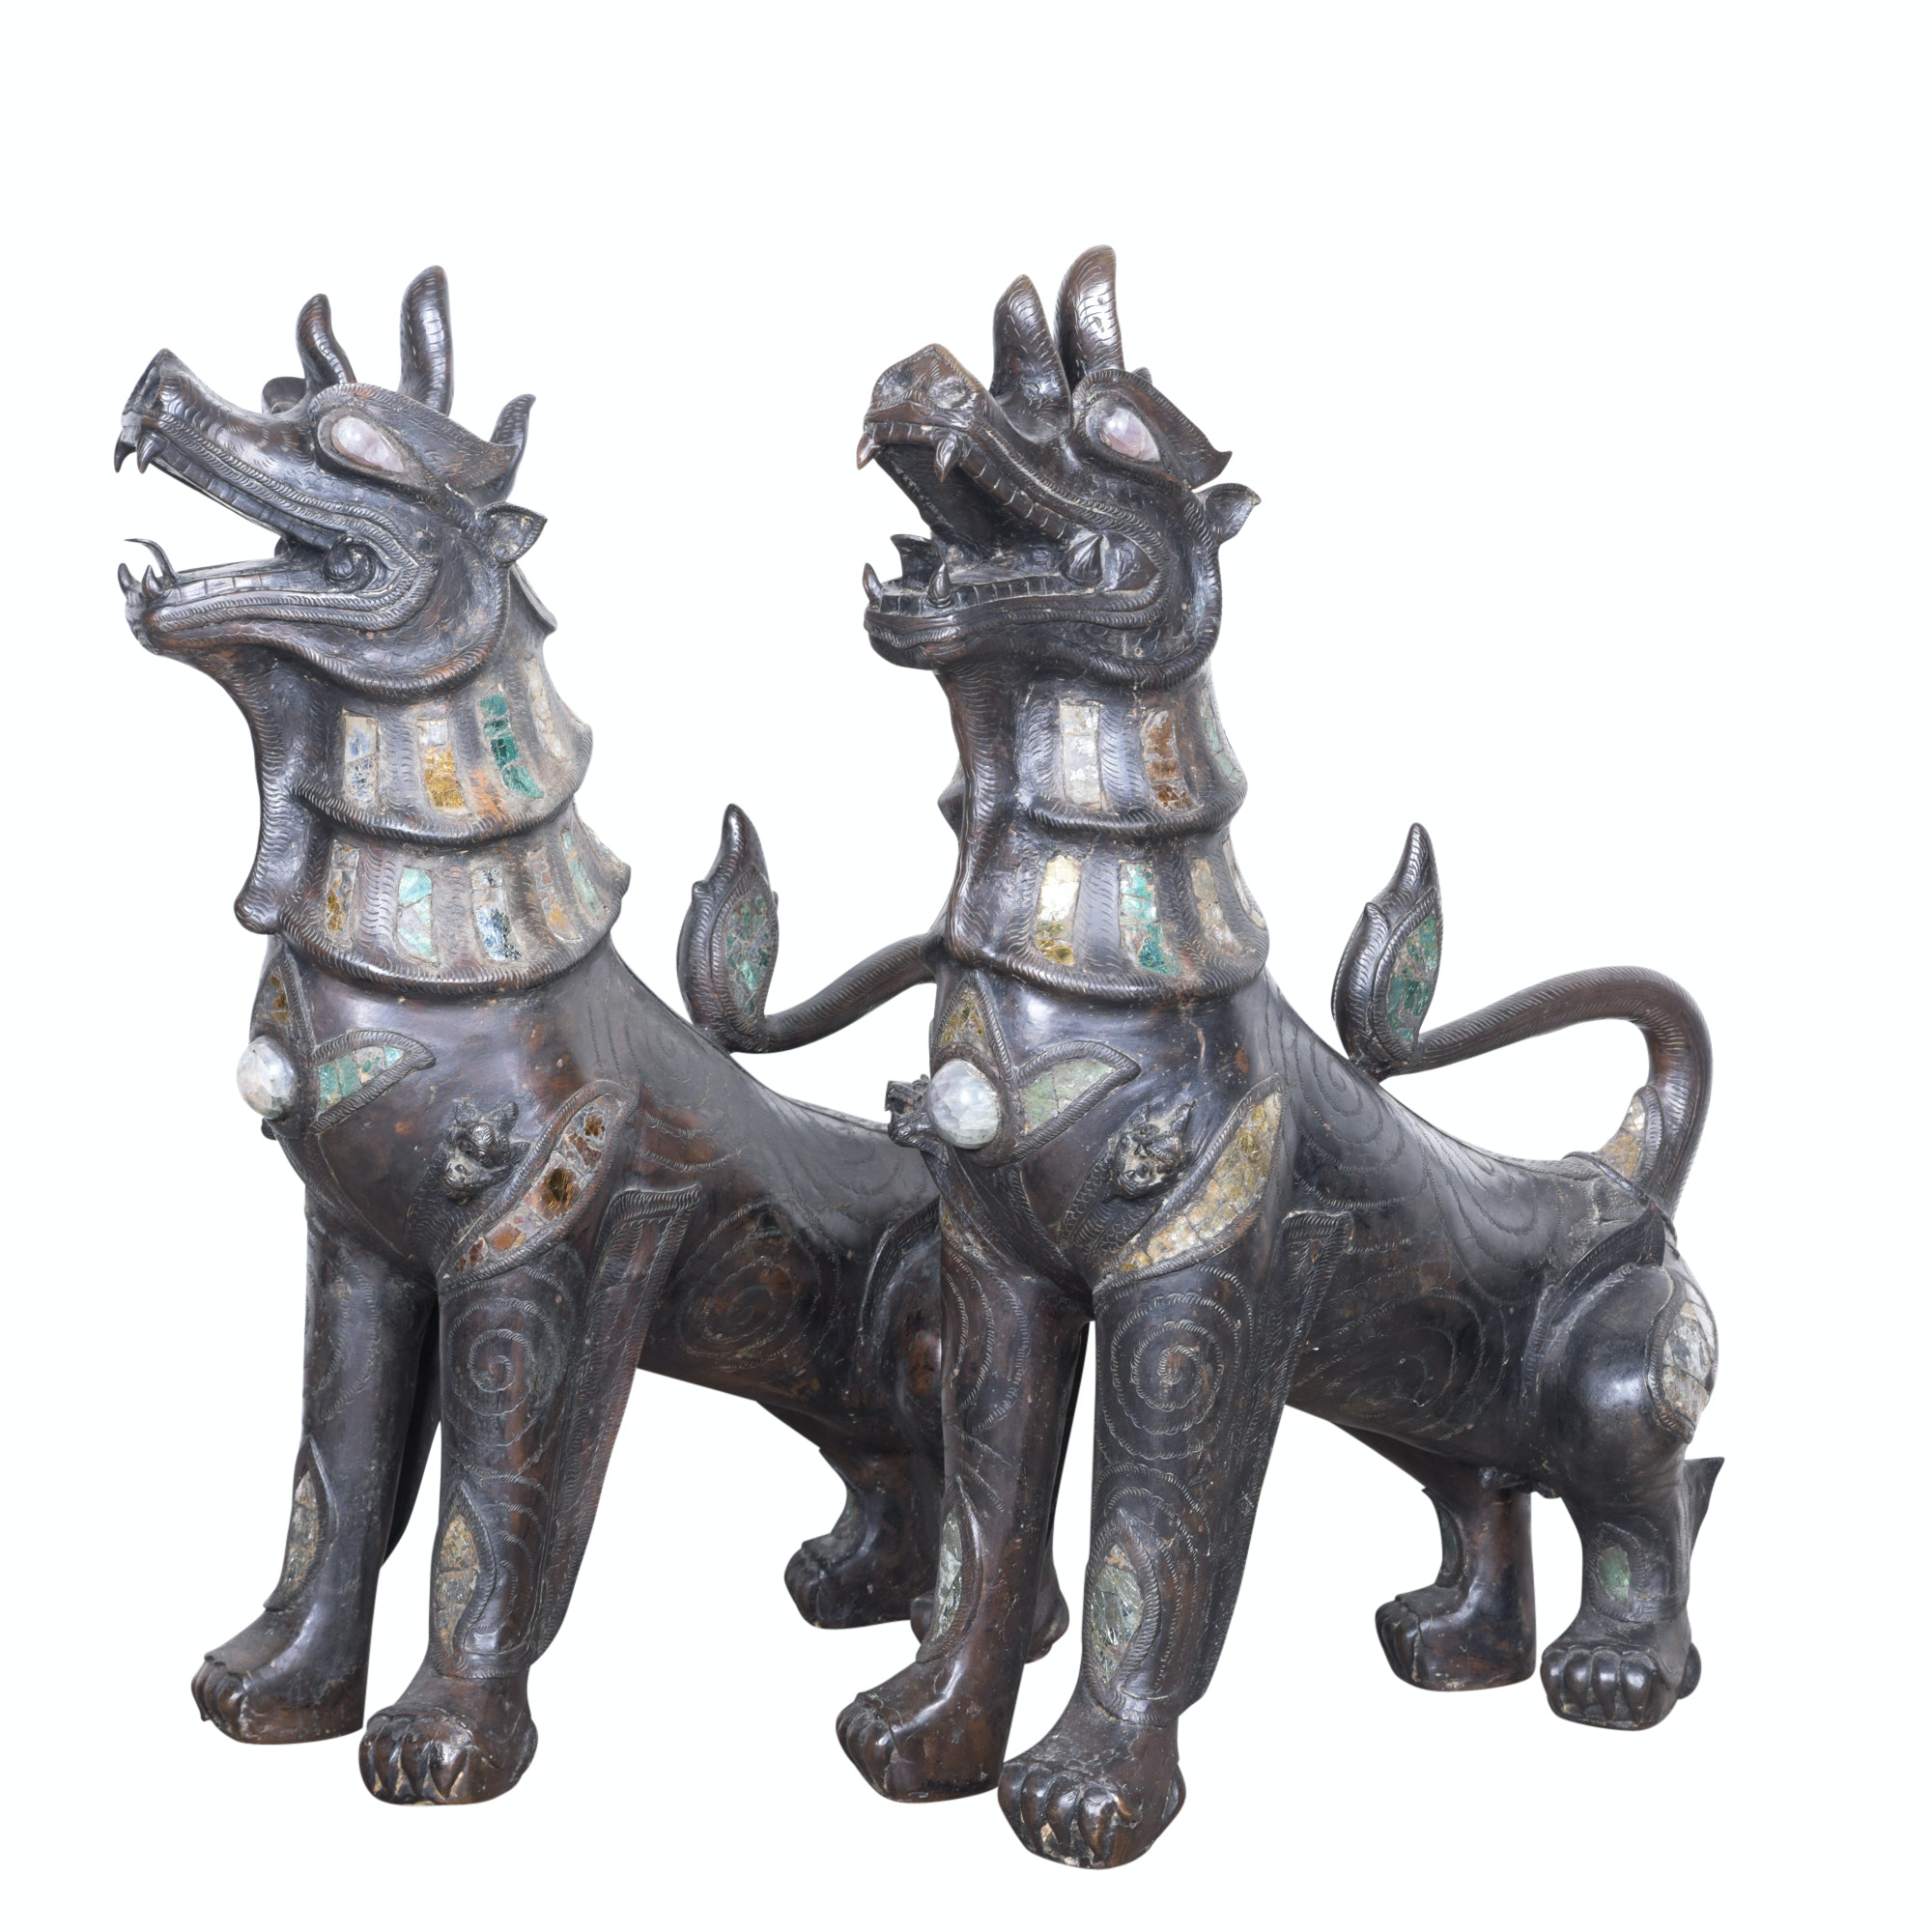 Thai Cast Metal Singha Guardian Lions with Glass and Quartz Inlay, 19th Century